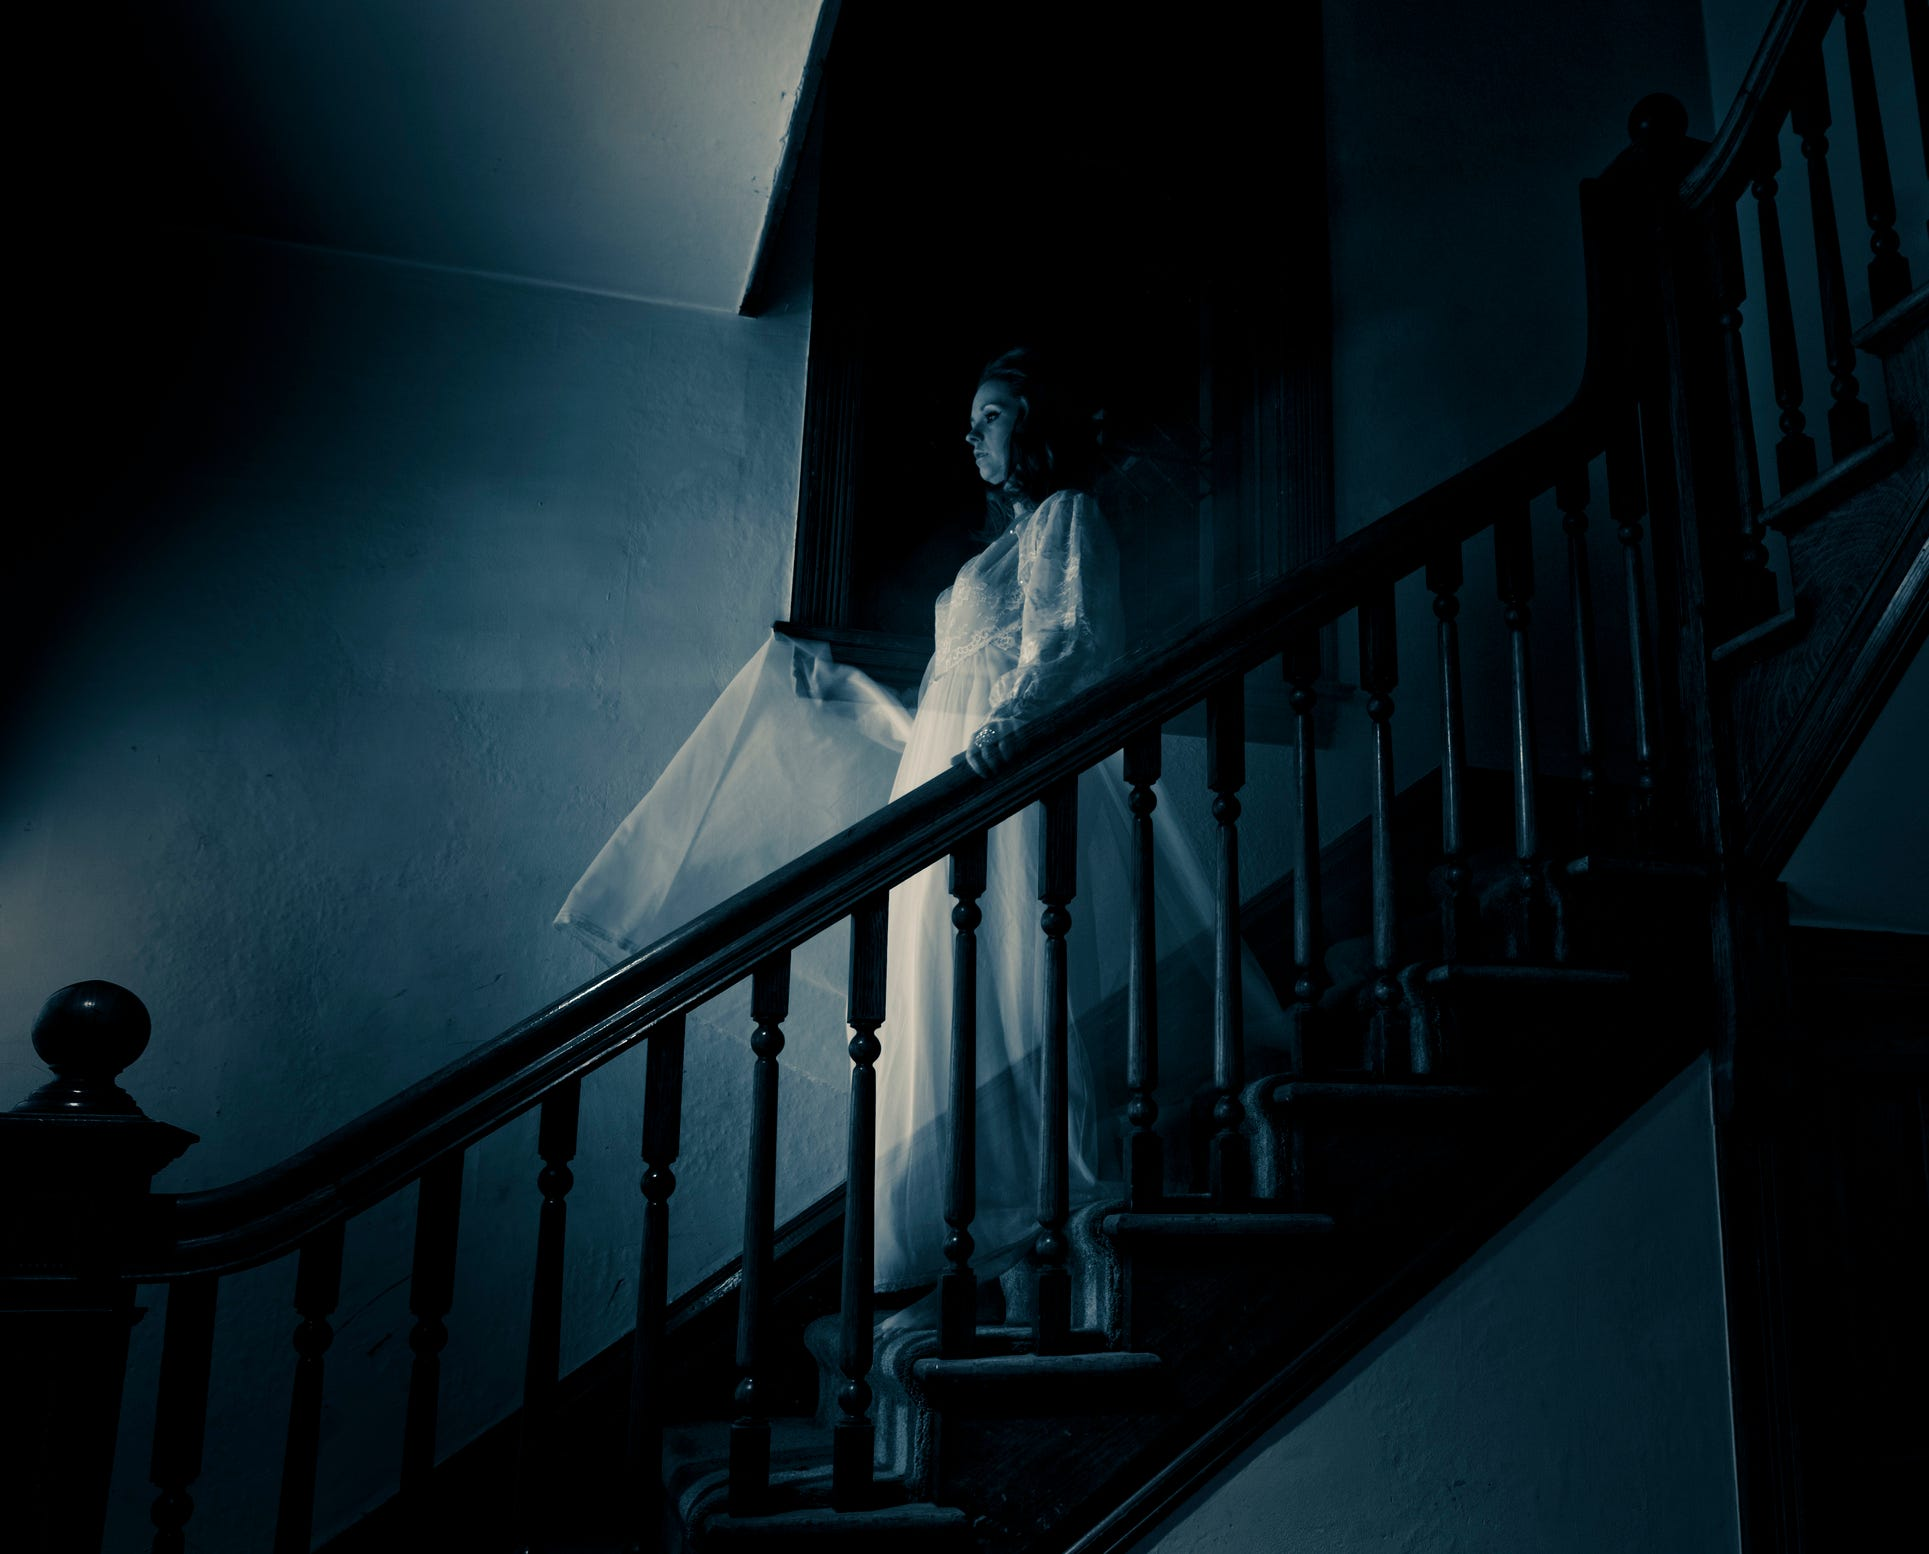 How many people believe in ghosts or spirits of the dead?